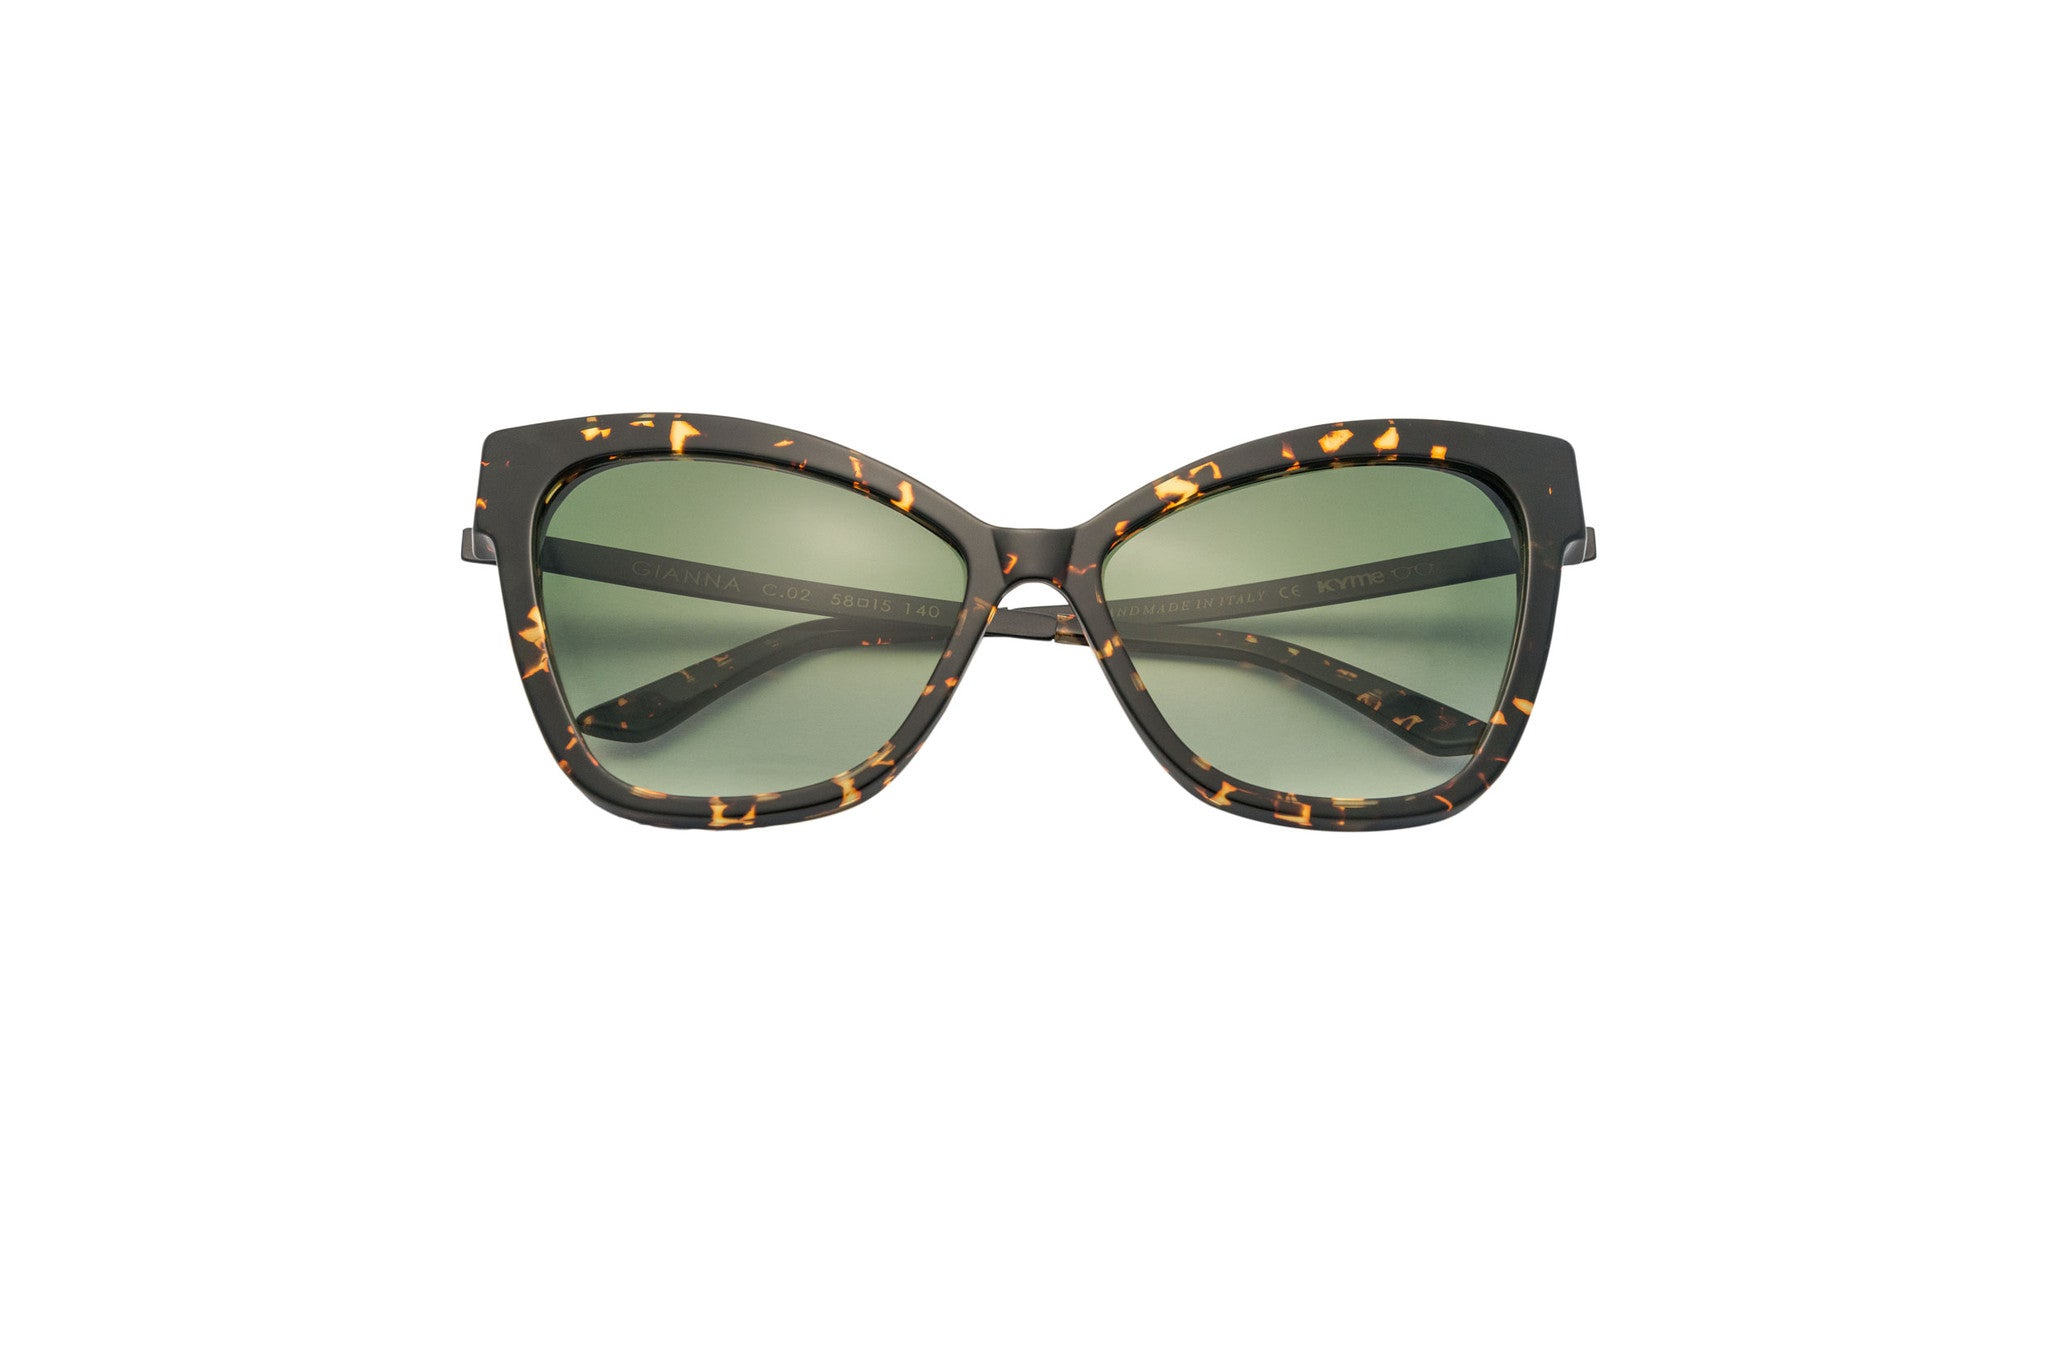 Kyme - Gianna Dark Havana Tortoise & Satin Black Arm Sunglasses